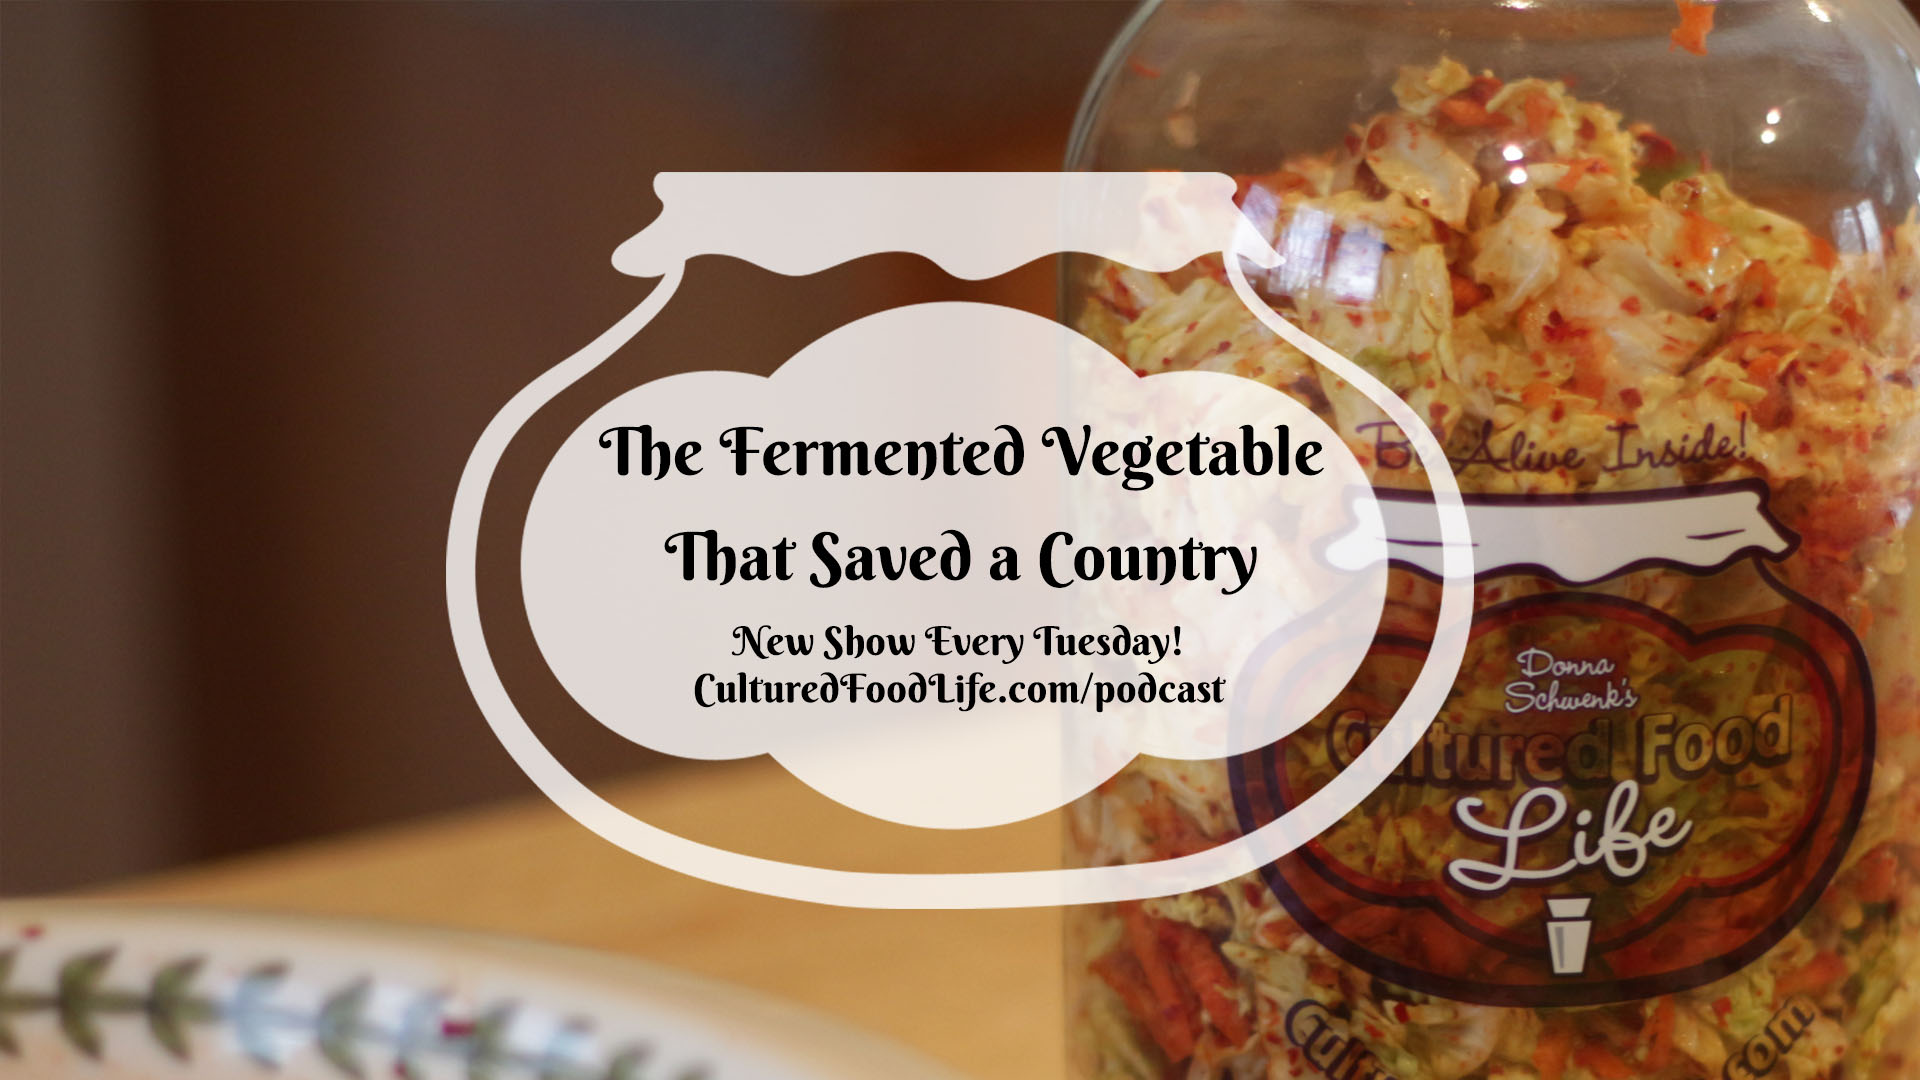 The Fermented Vegetable That Saved a Country Full